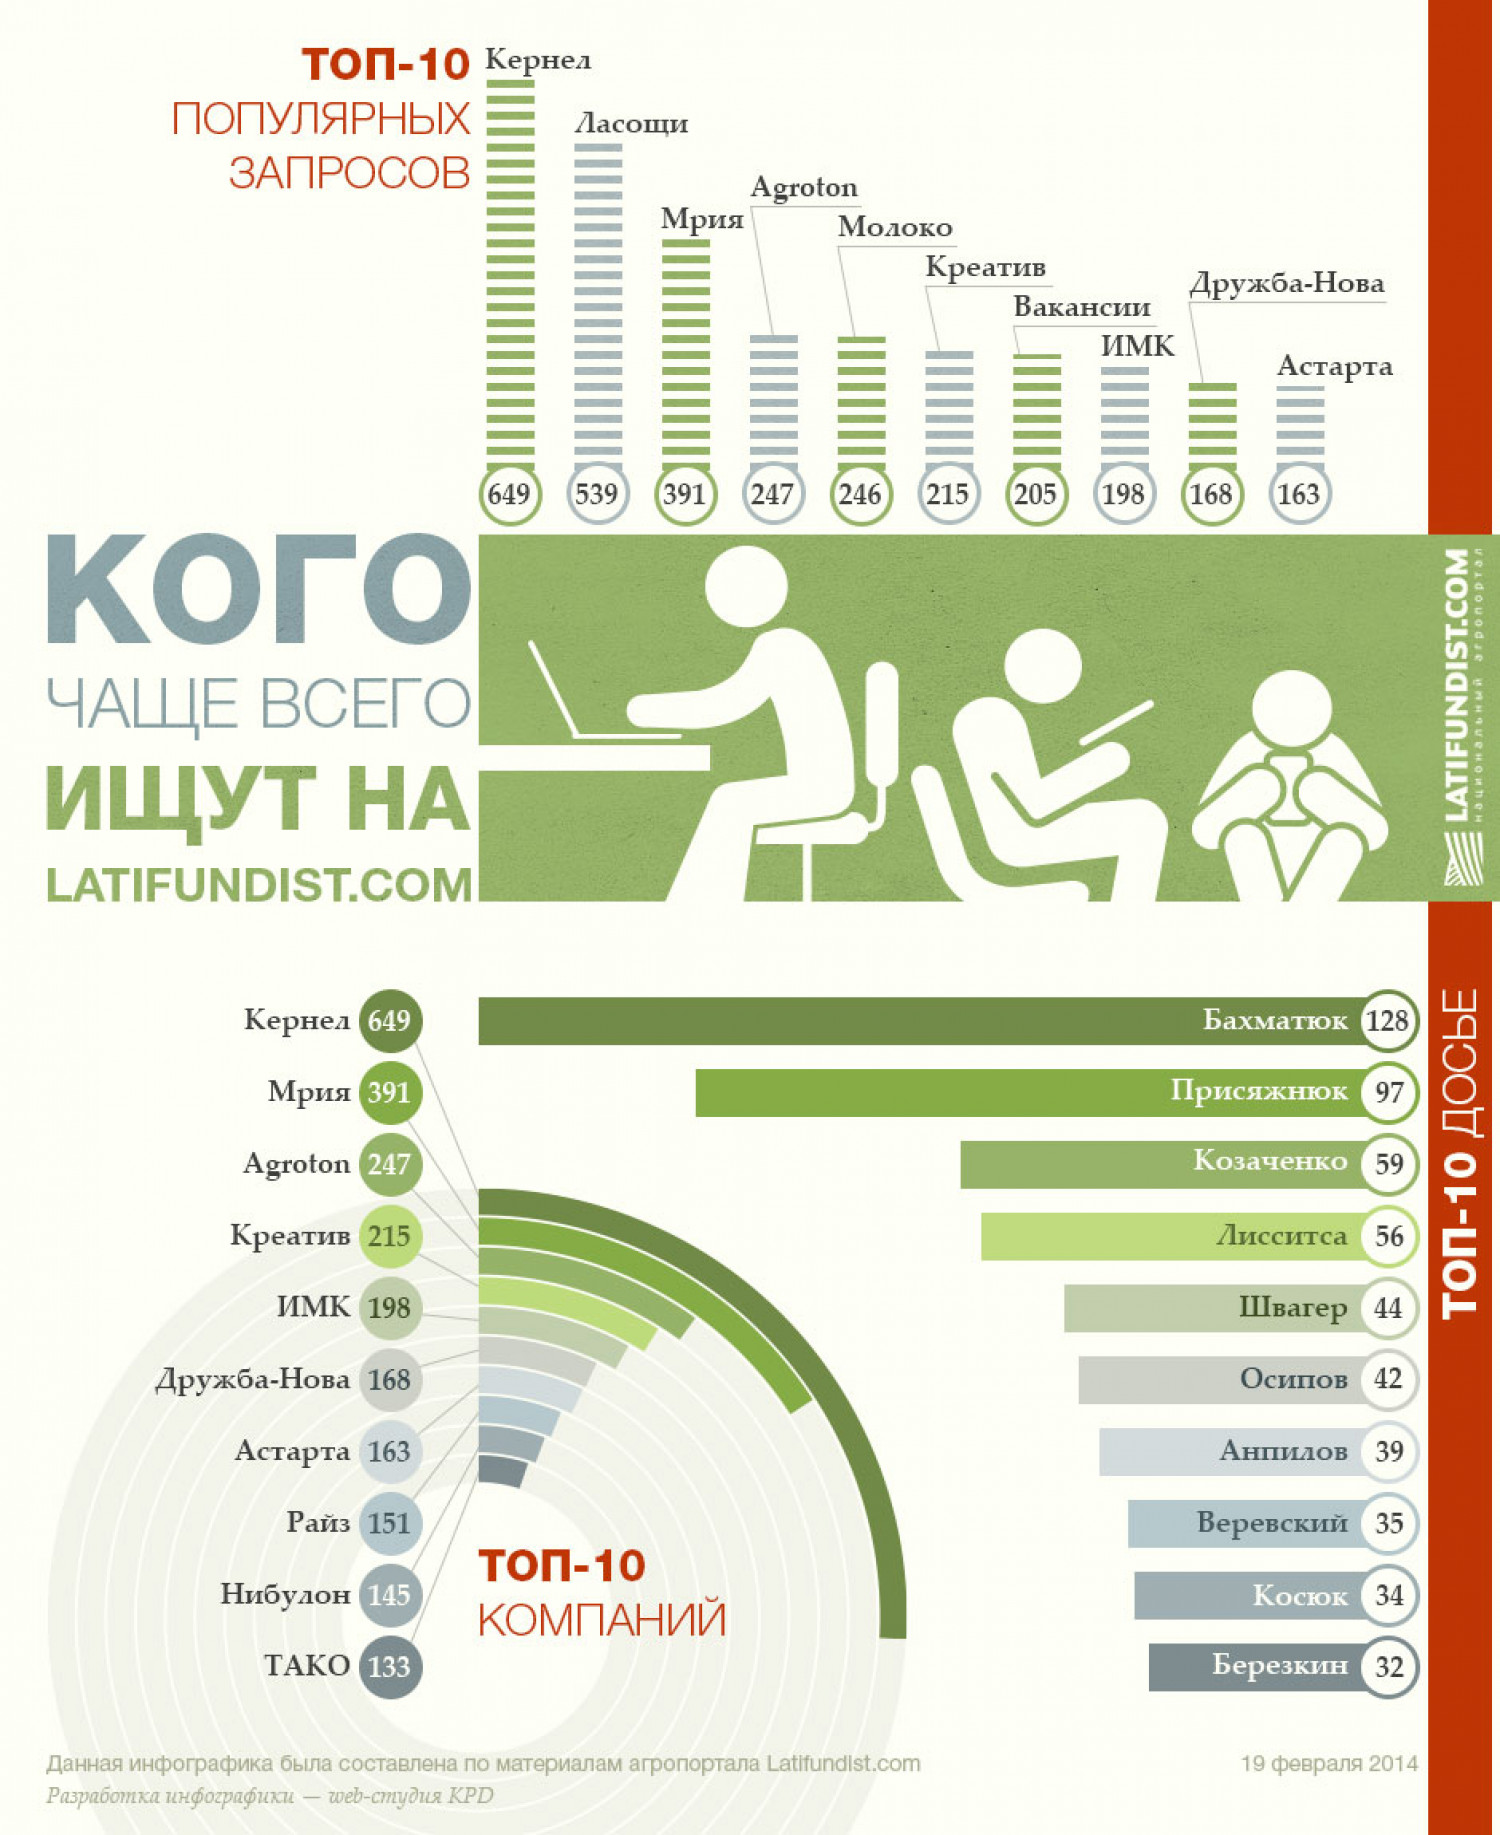 Search on latifundist.com Infographic